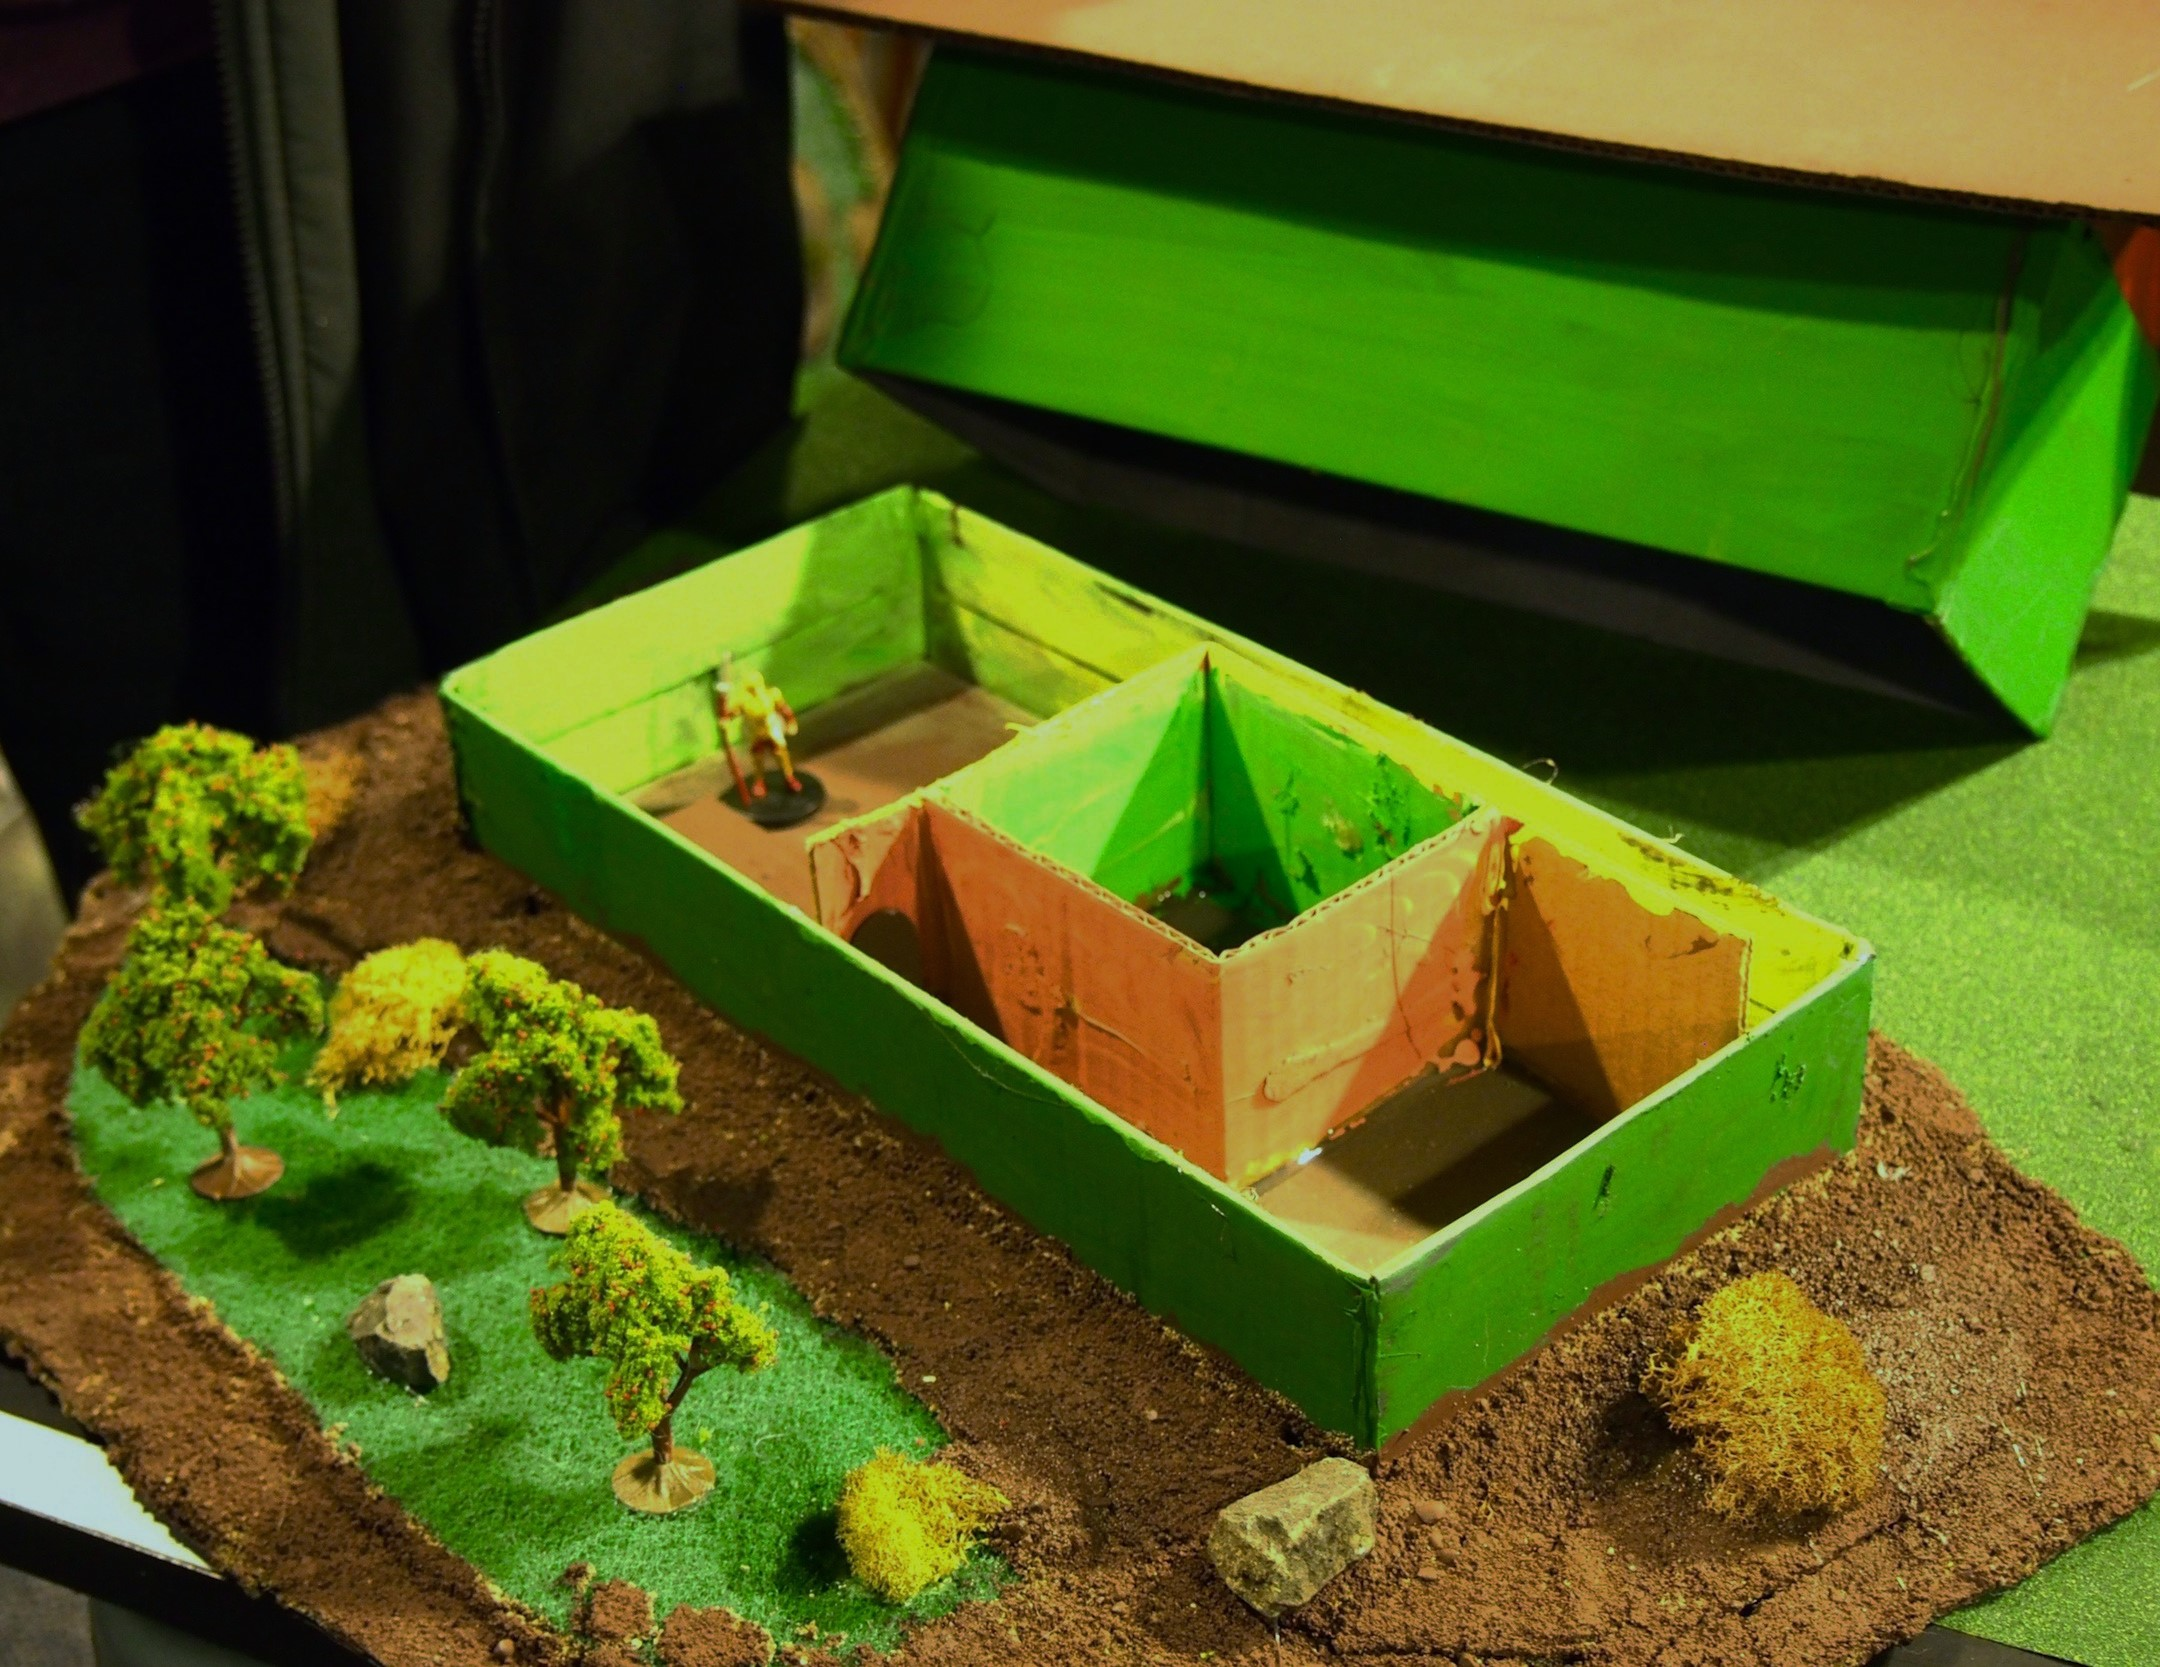 Dragon's Island 3-D Terrain from Recycled Material | Kobold